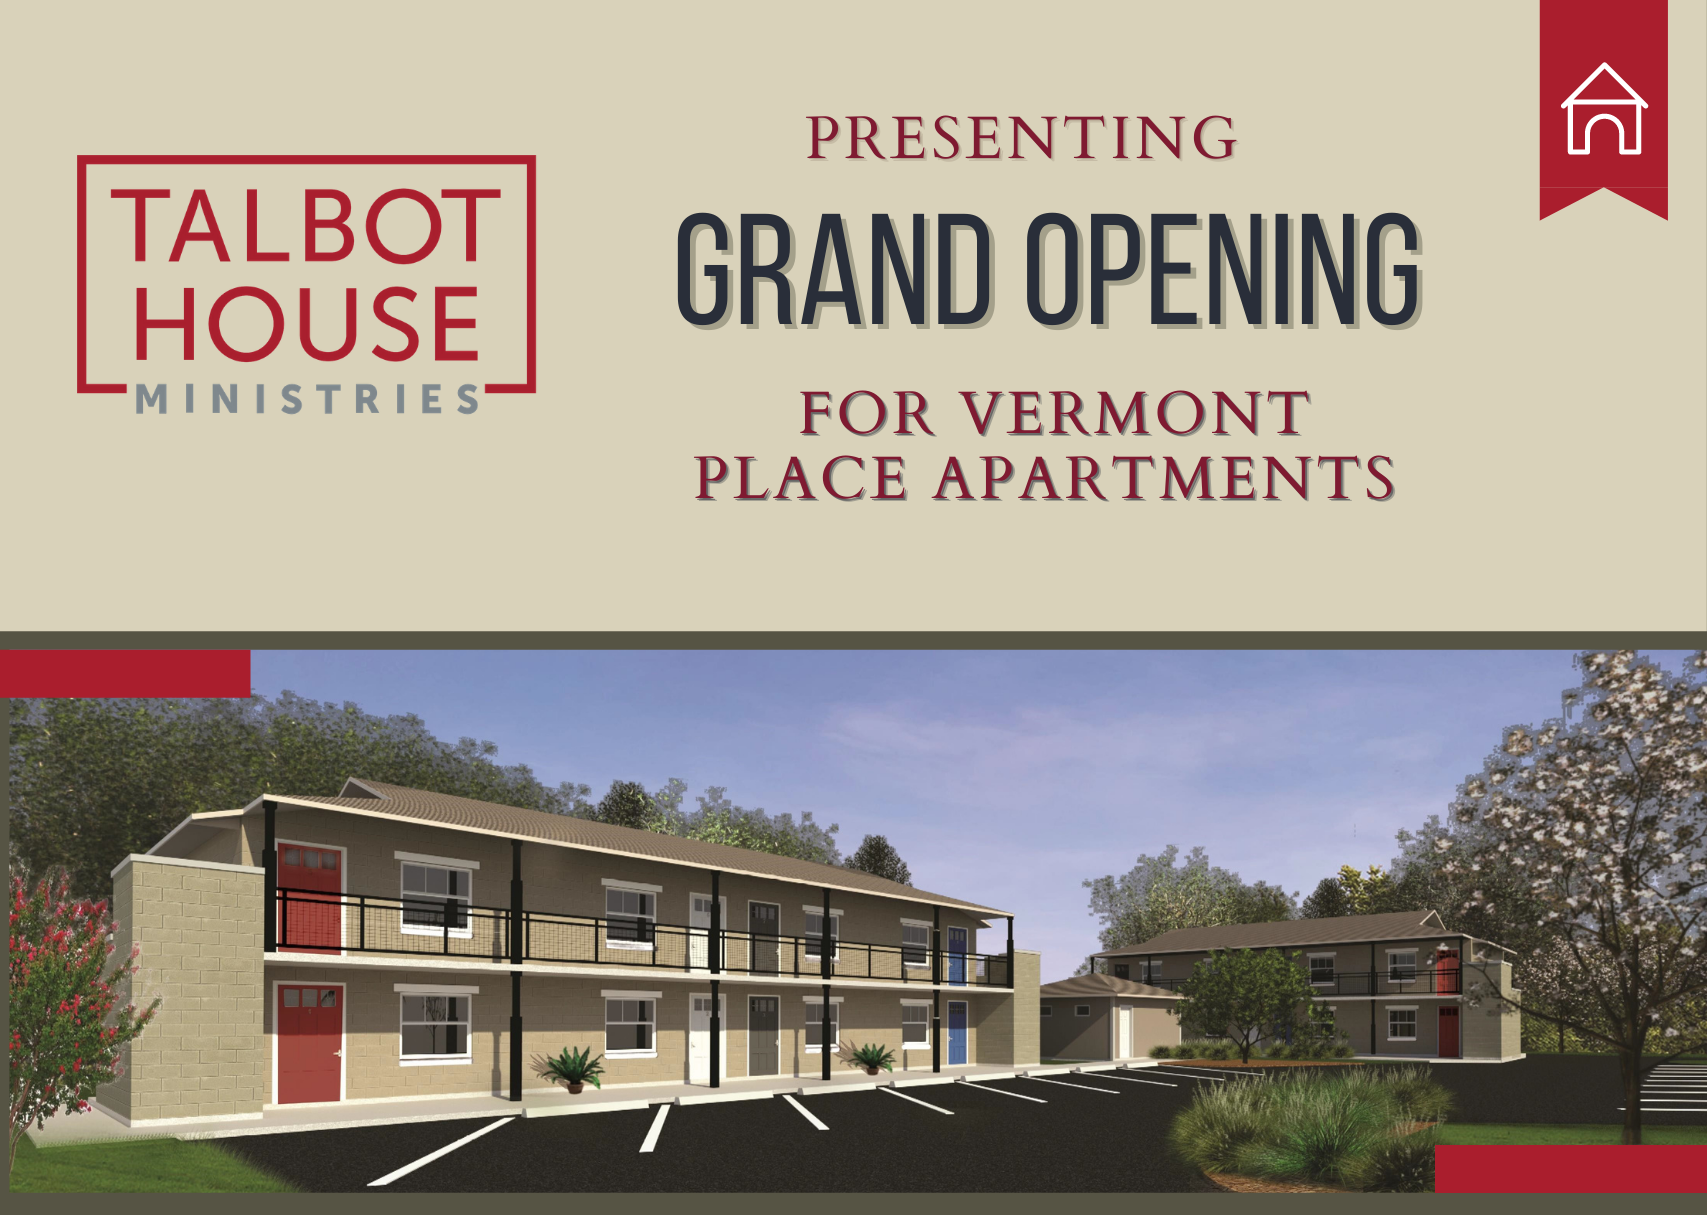 Vermont Place Grand Opening!